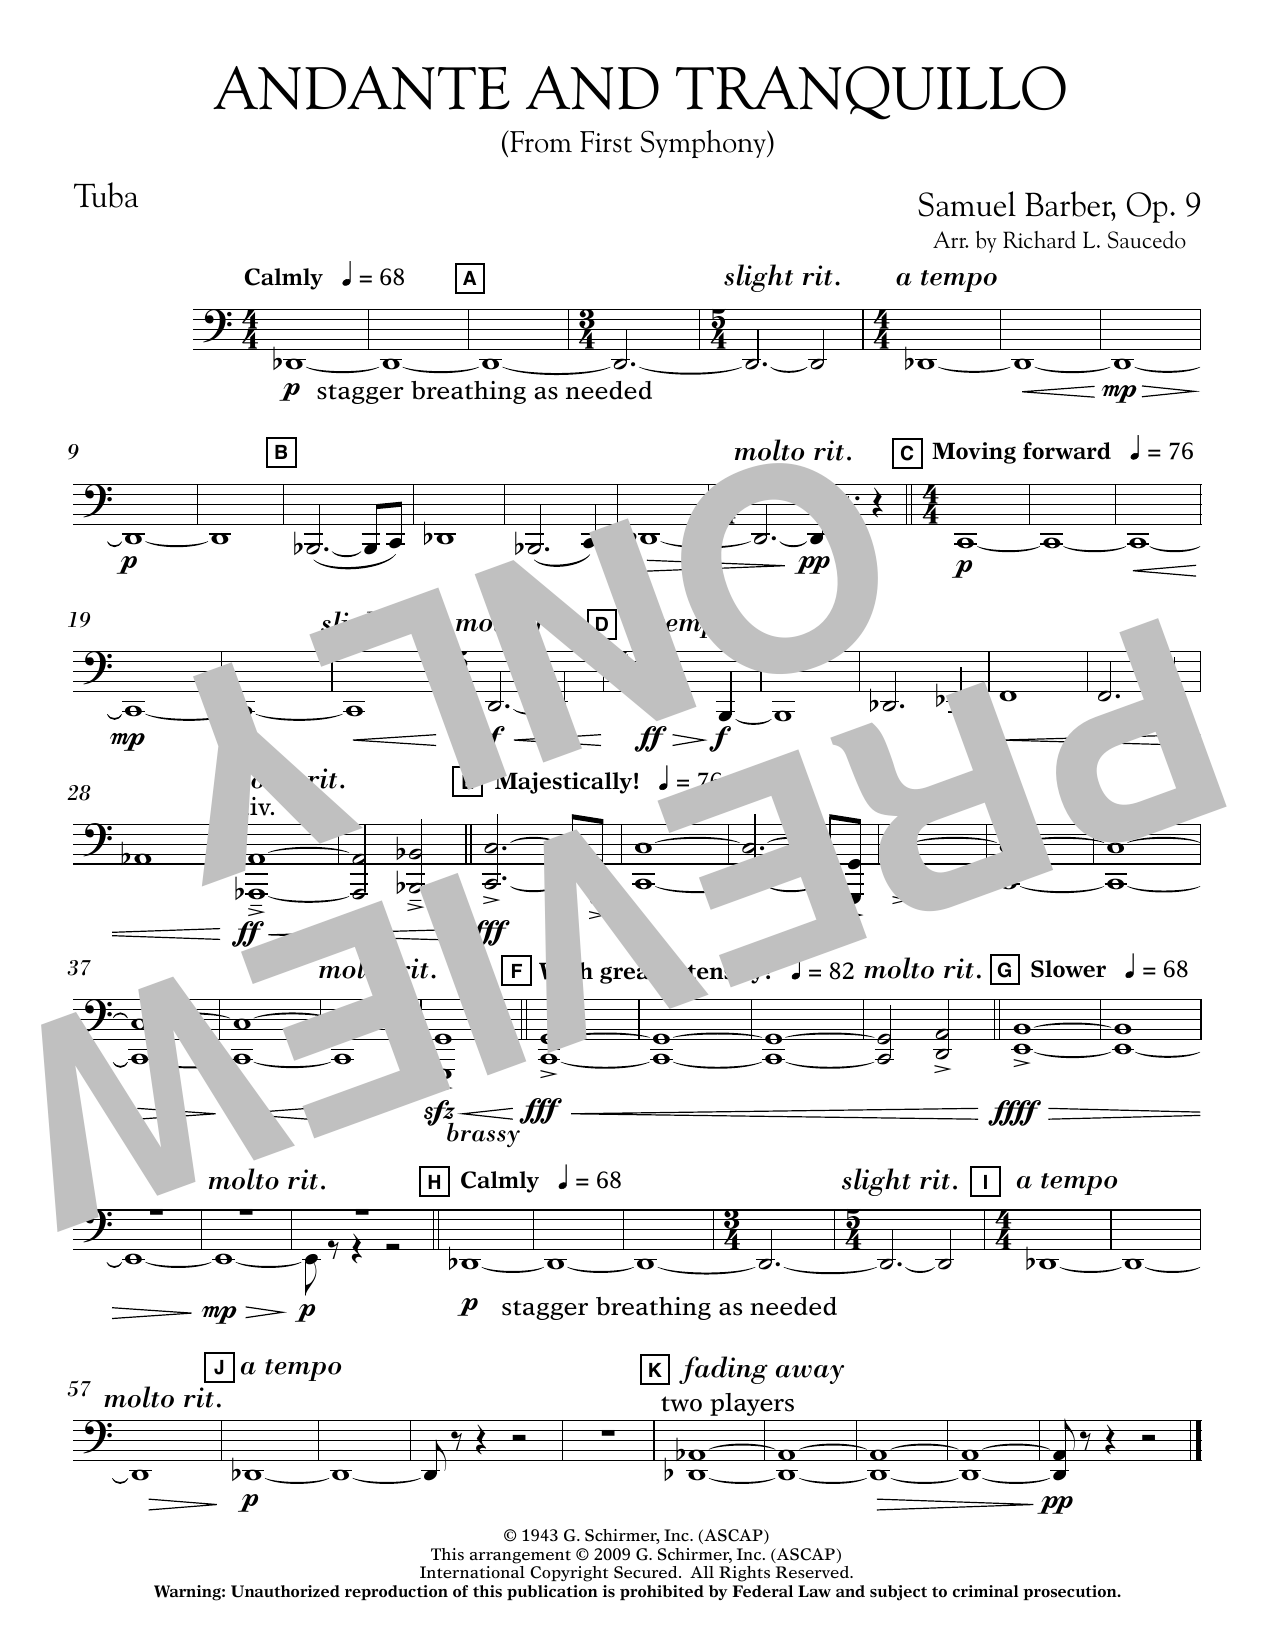 Andante and Tranquillo (from First Symphony) - Tuba Sheet Music